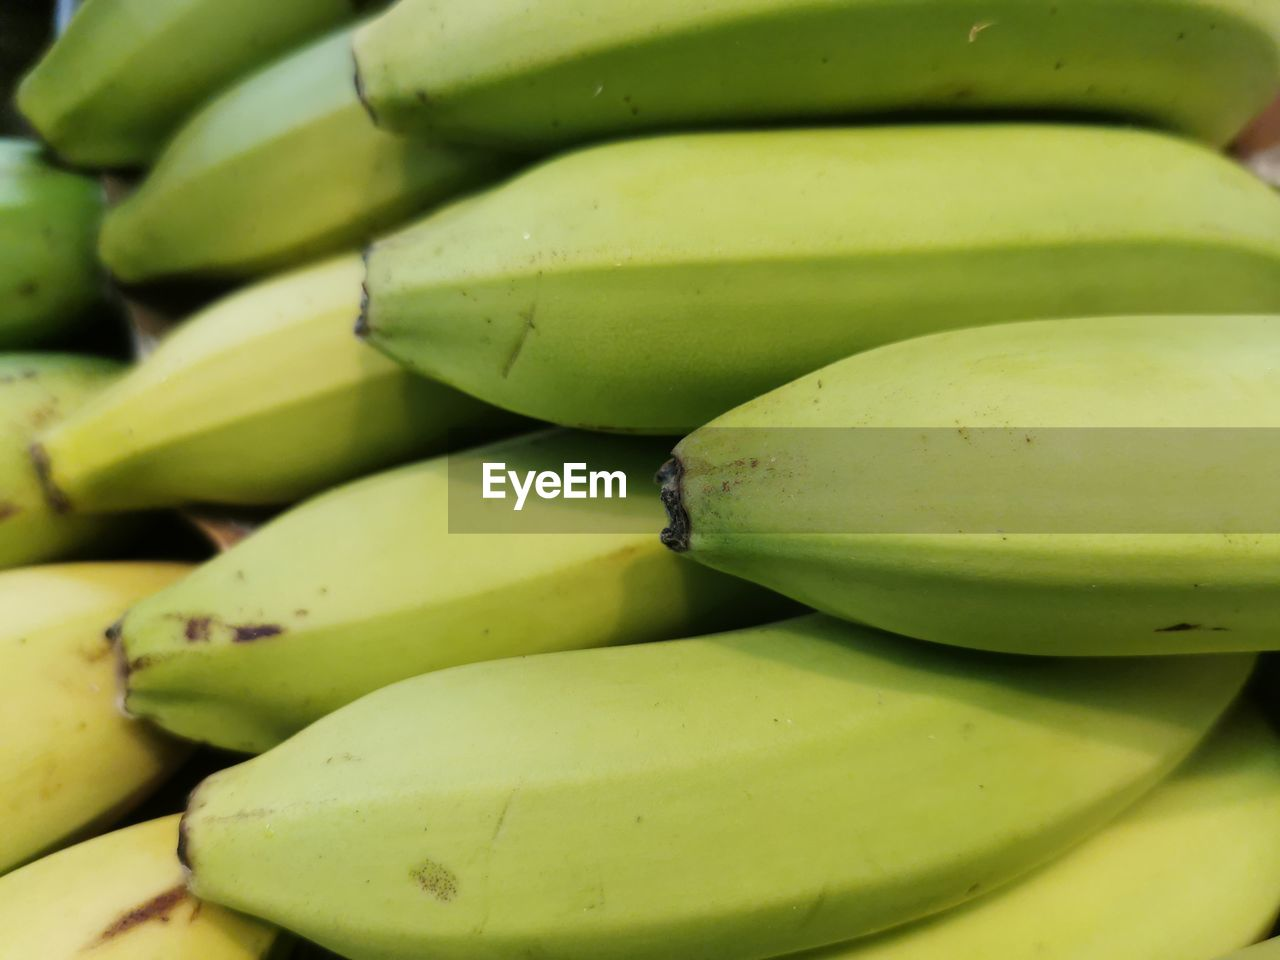 healthy eating, green color, food and drink, wellbeing, fruit, food, banana, freshness, full frame, close-up, no people, backgrounds, still life, yellow, abundance, large group of objects, day, for sale, group of objects, ripe